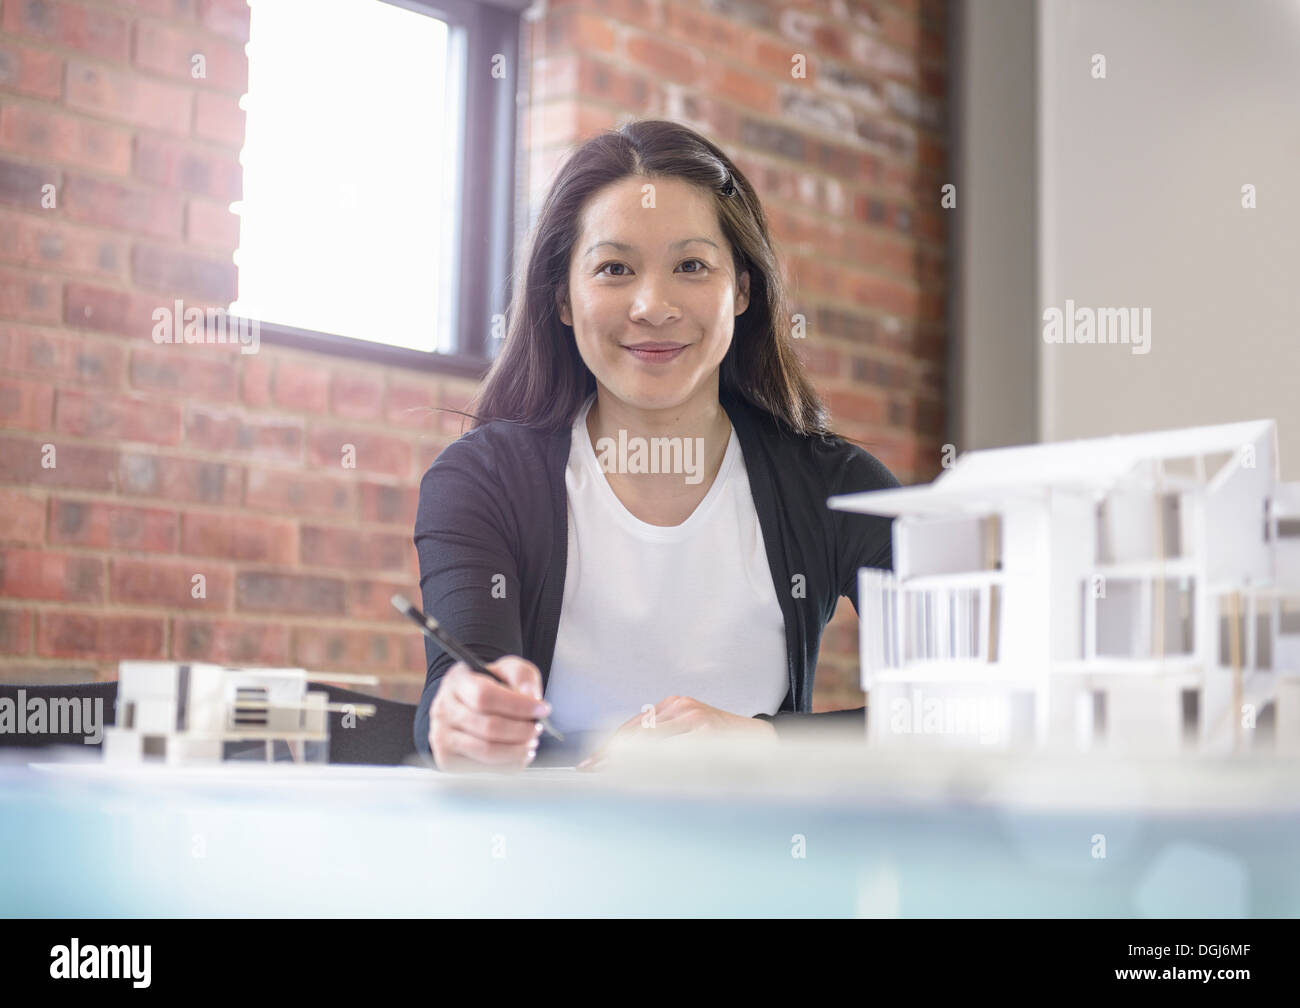 Architect working at desk in office with model of buildings - Stock Image